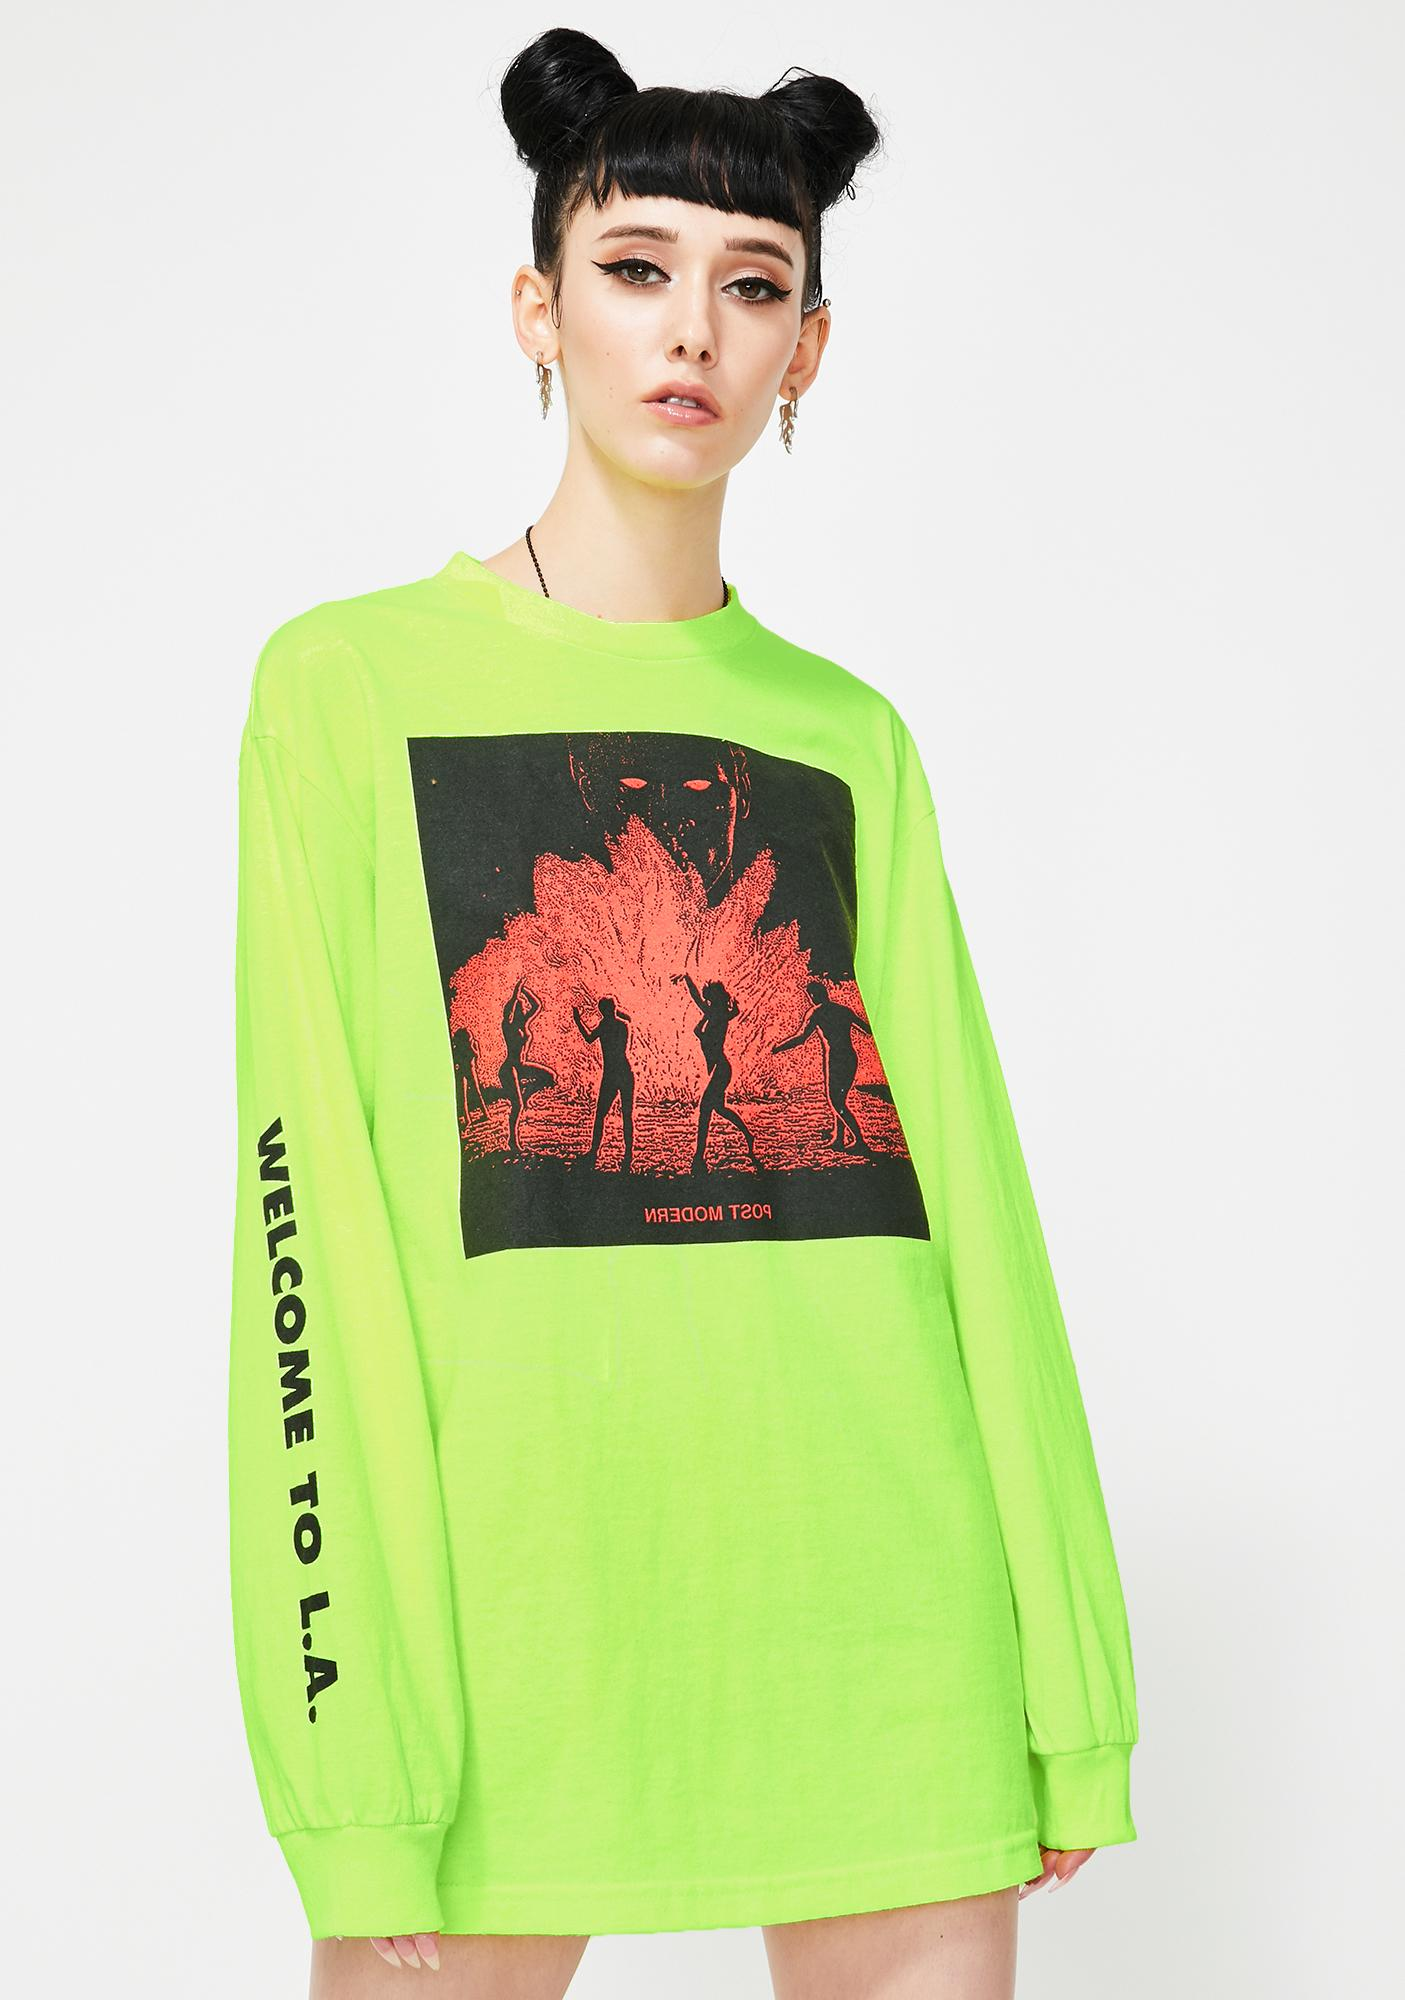 BOW3RY Neon Post Modern Long Sleeve Graphic Tee